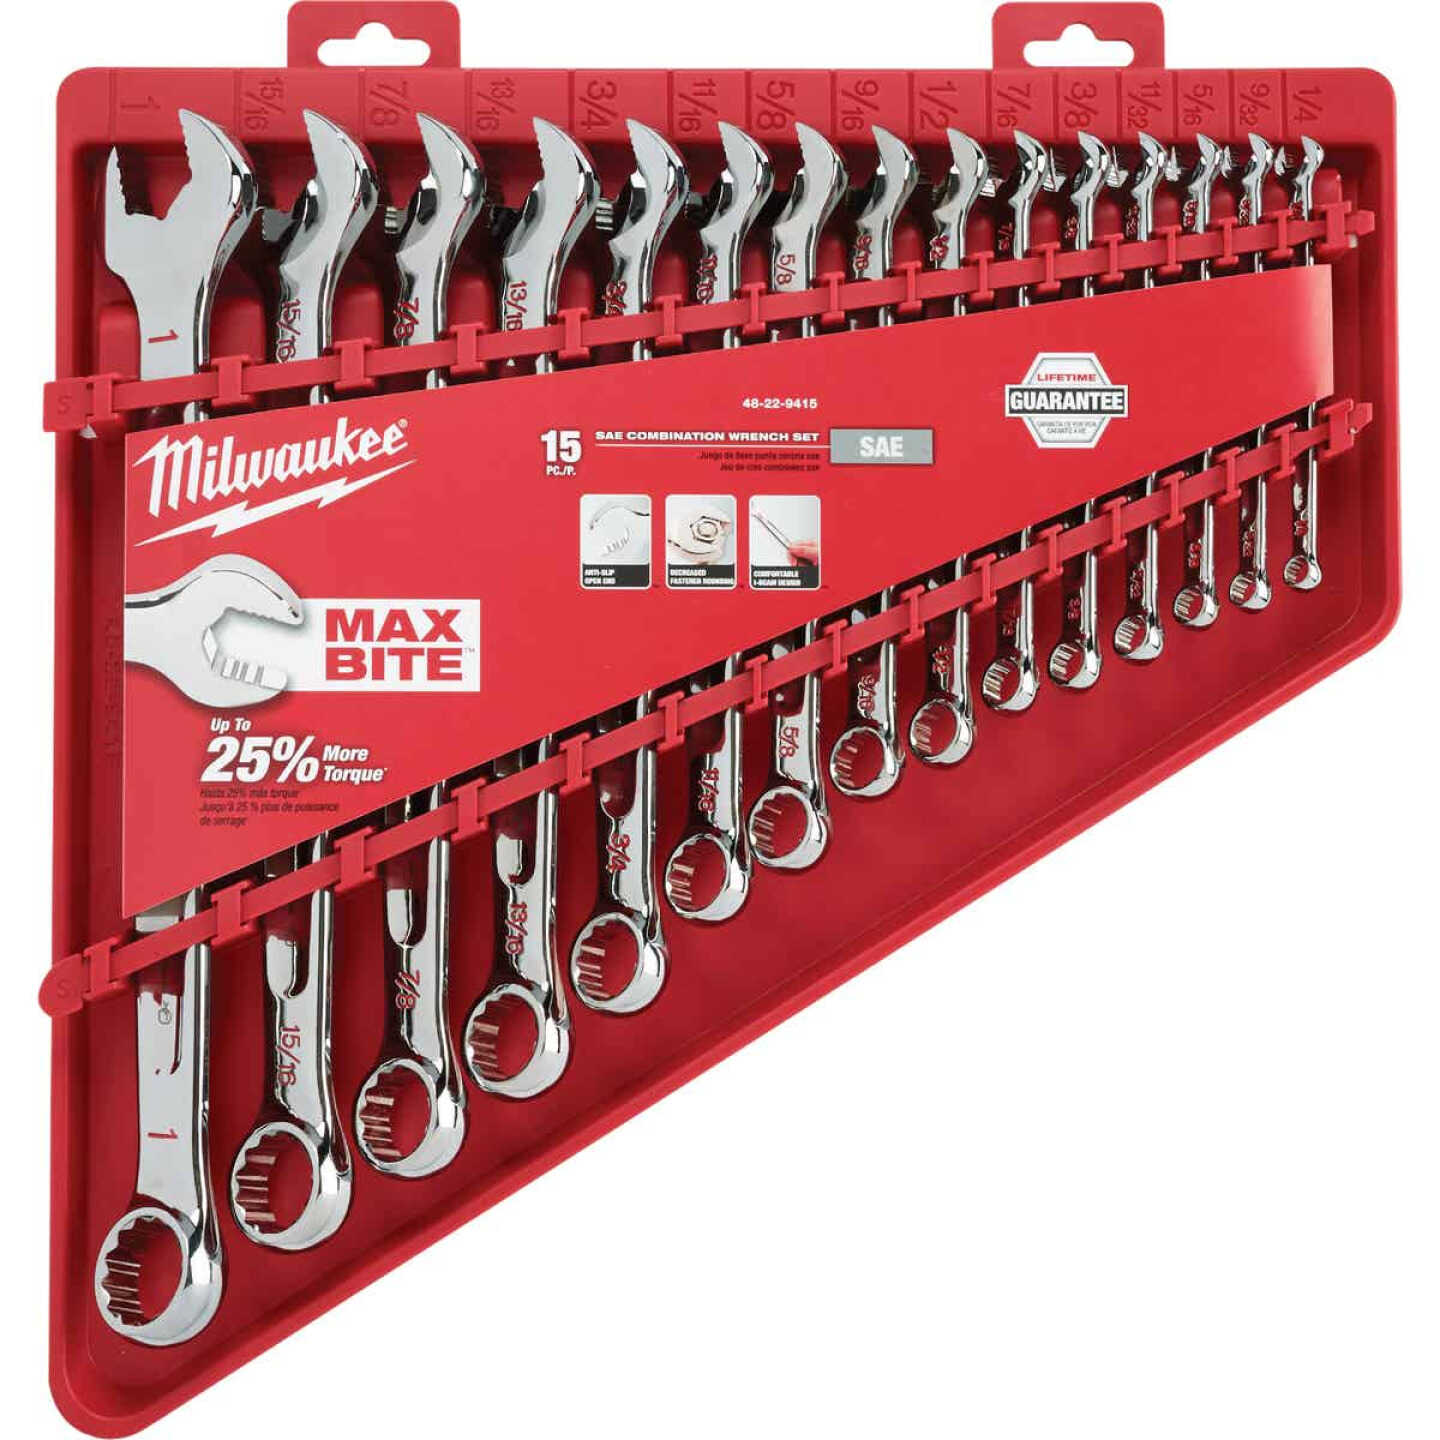 Milwaukee Standard 12-Point Combination Wrench Set (15-Piece) Image 2